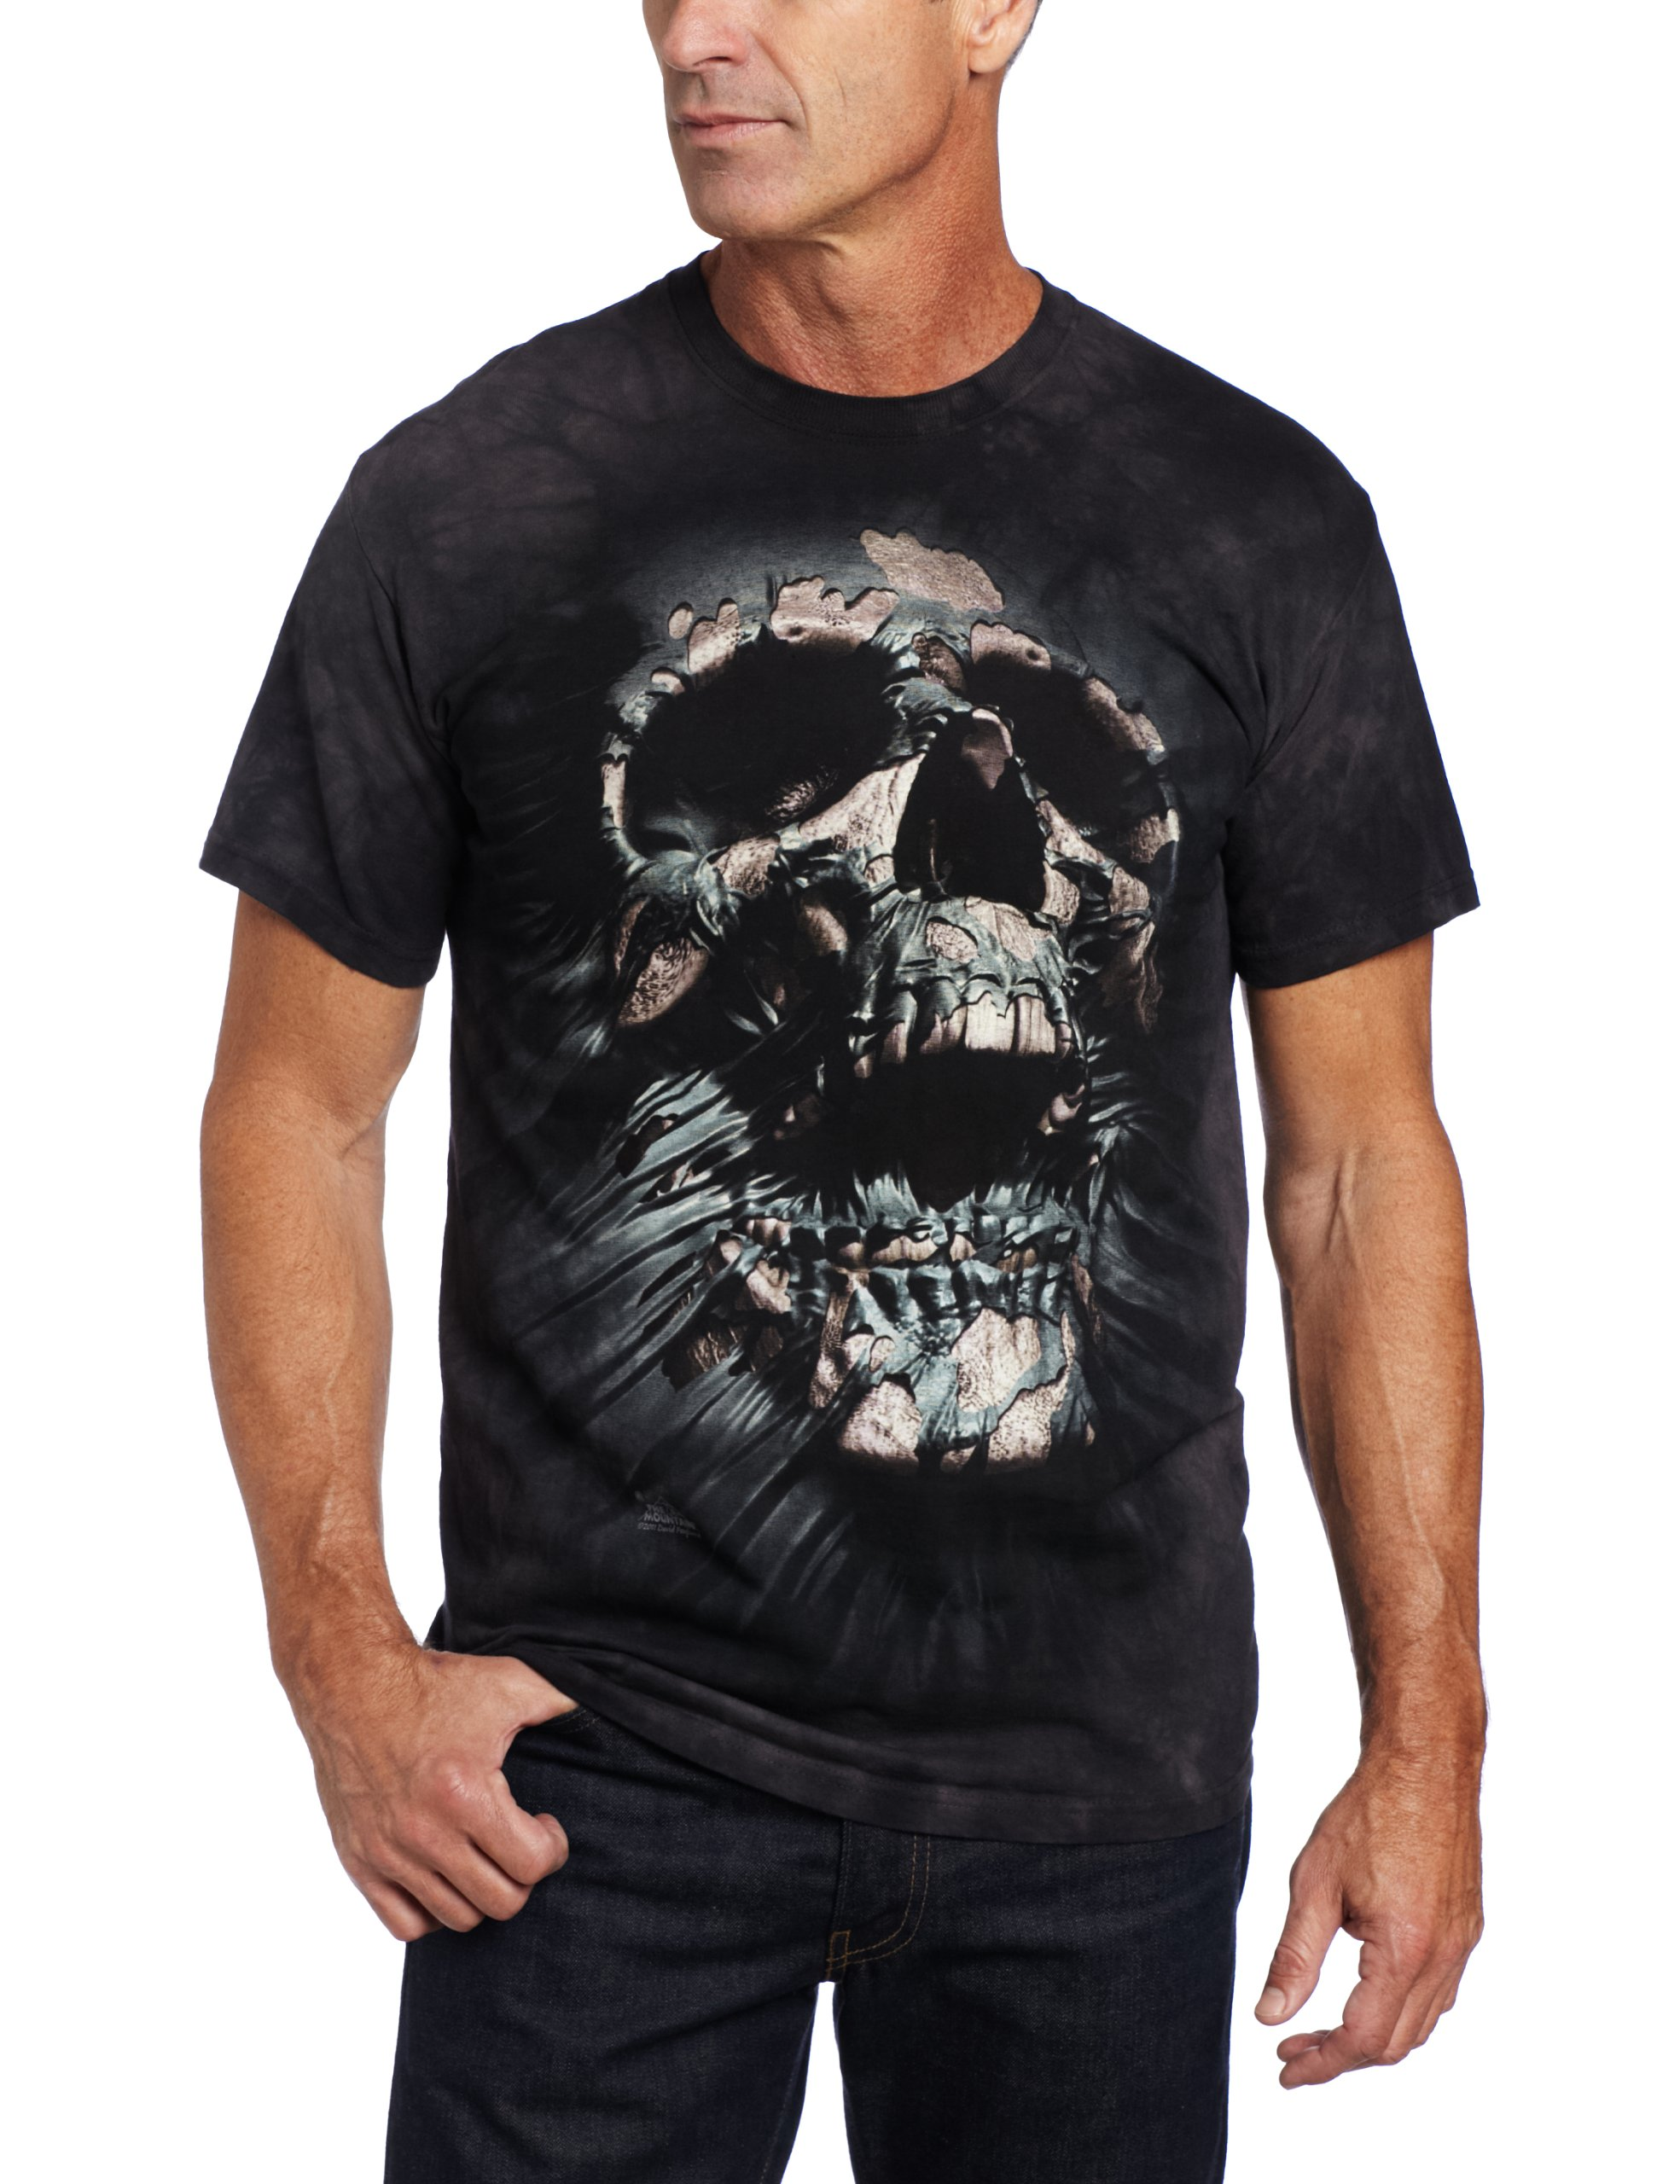 Men's Breakthrough Graphic Skull T-shirt